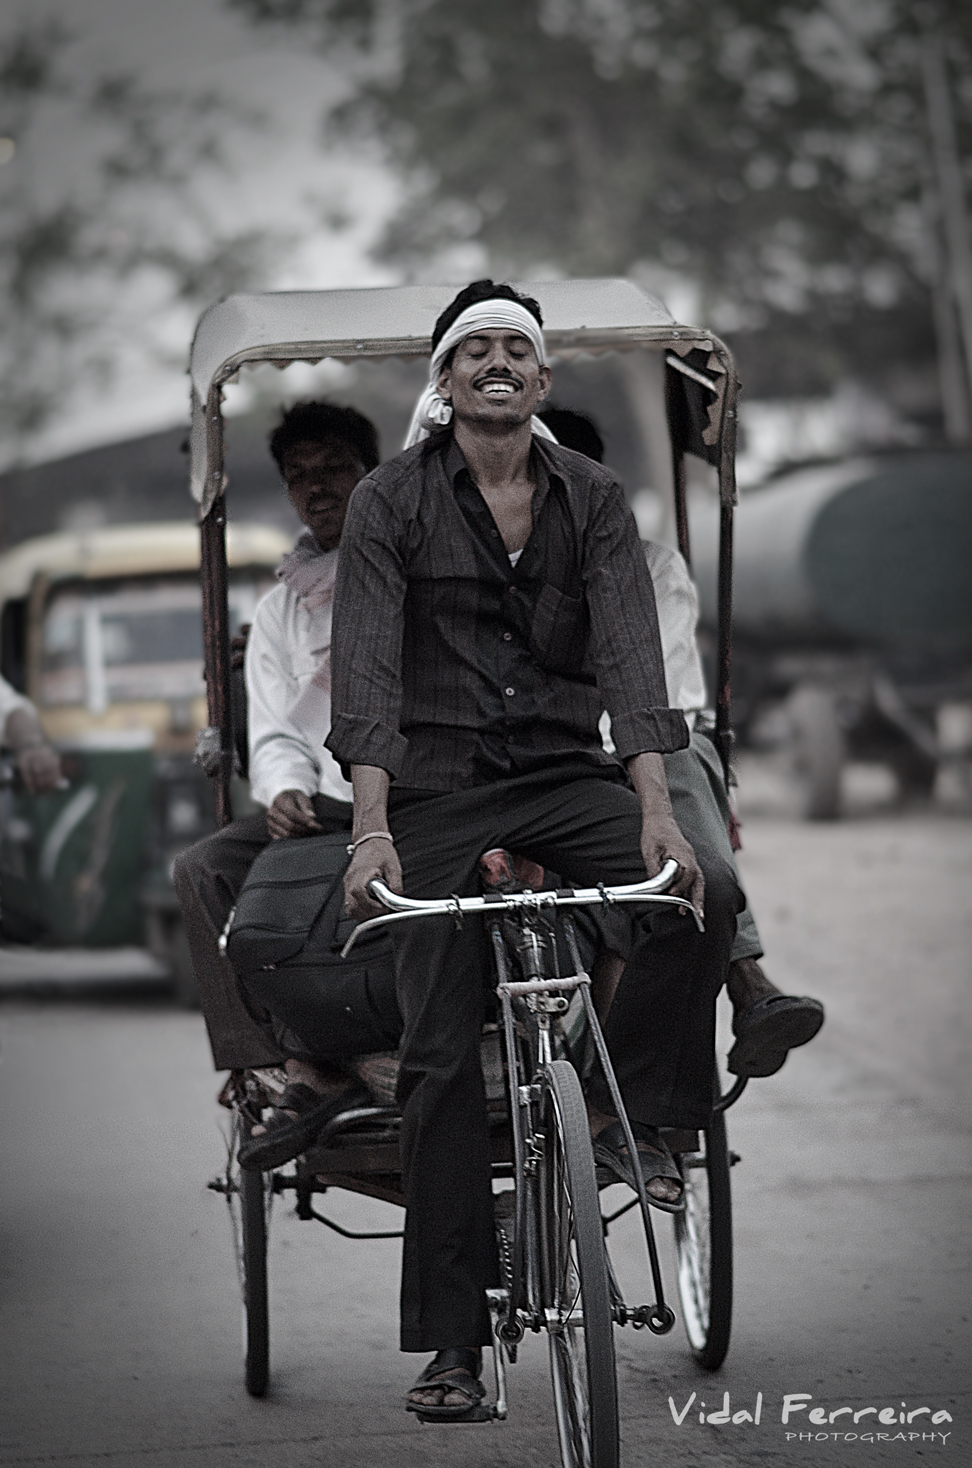 Freedom - New Delhi, India